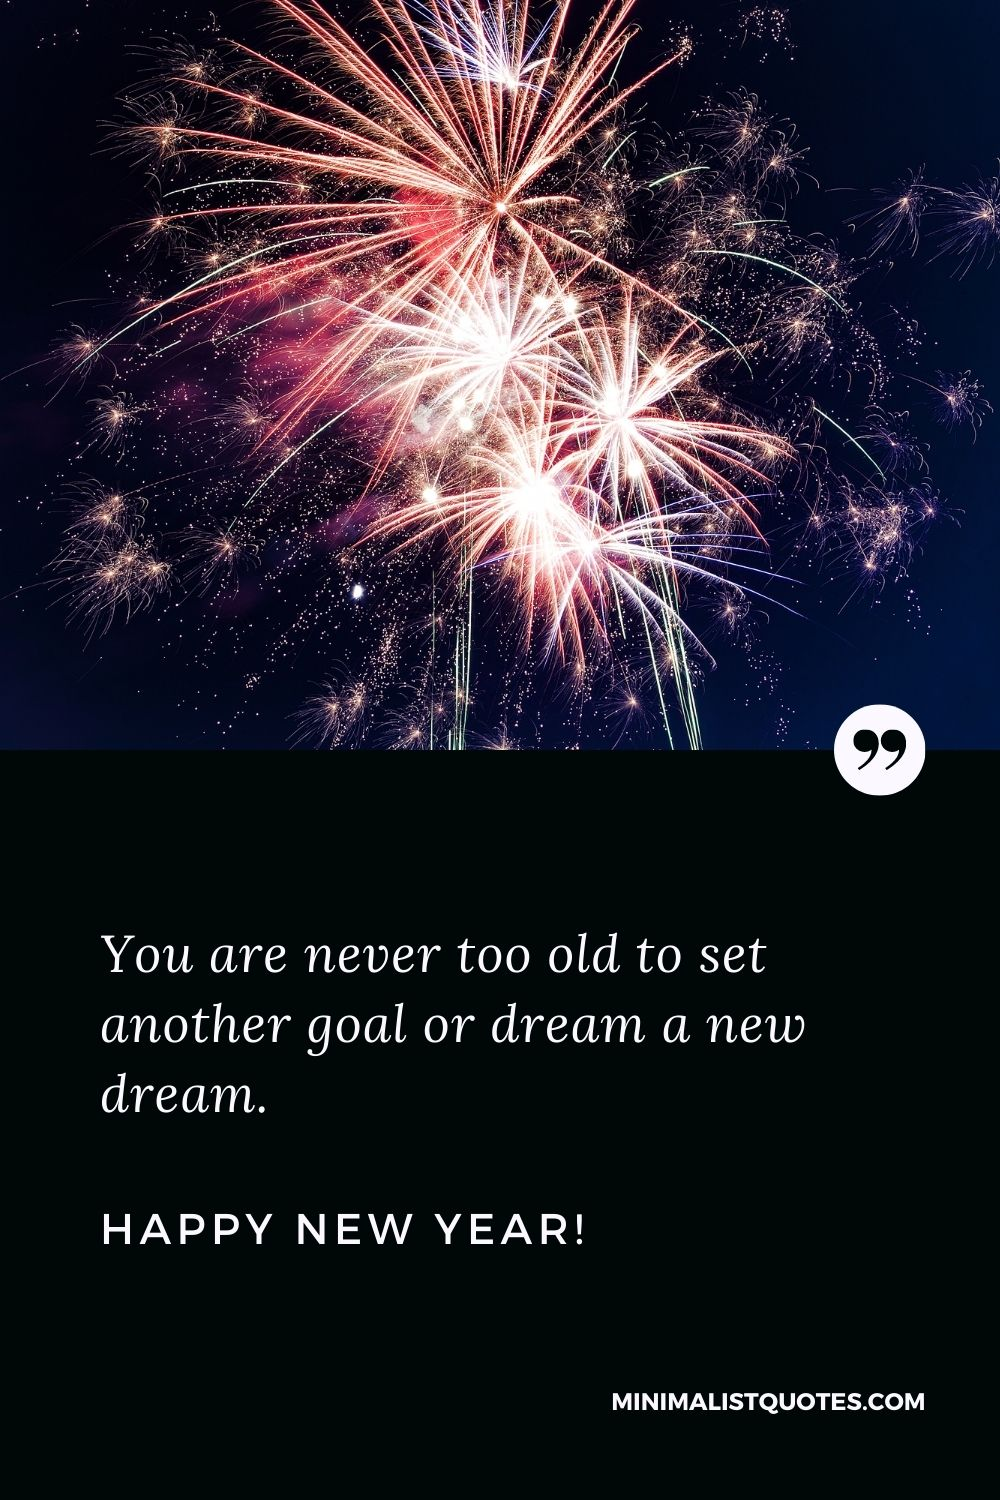 Happy new year quotes 2022: You are never too old to set another goal, or to dream a new dream. Happy New Year!